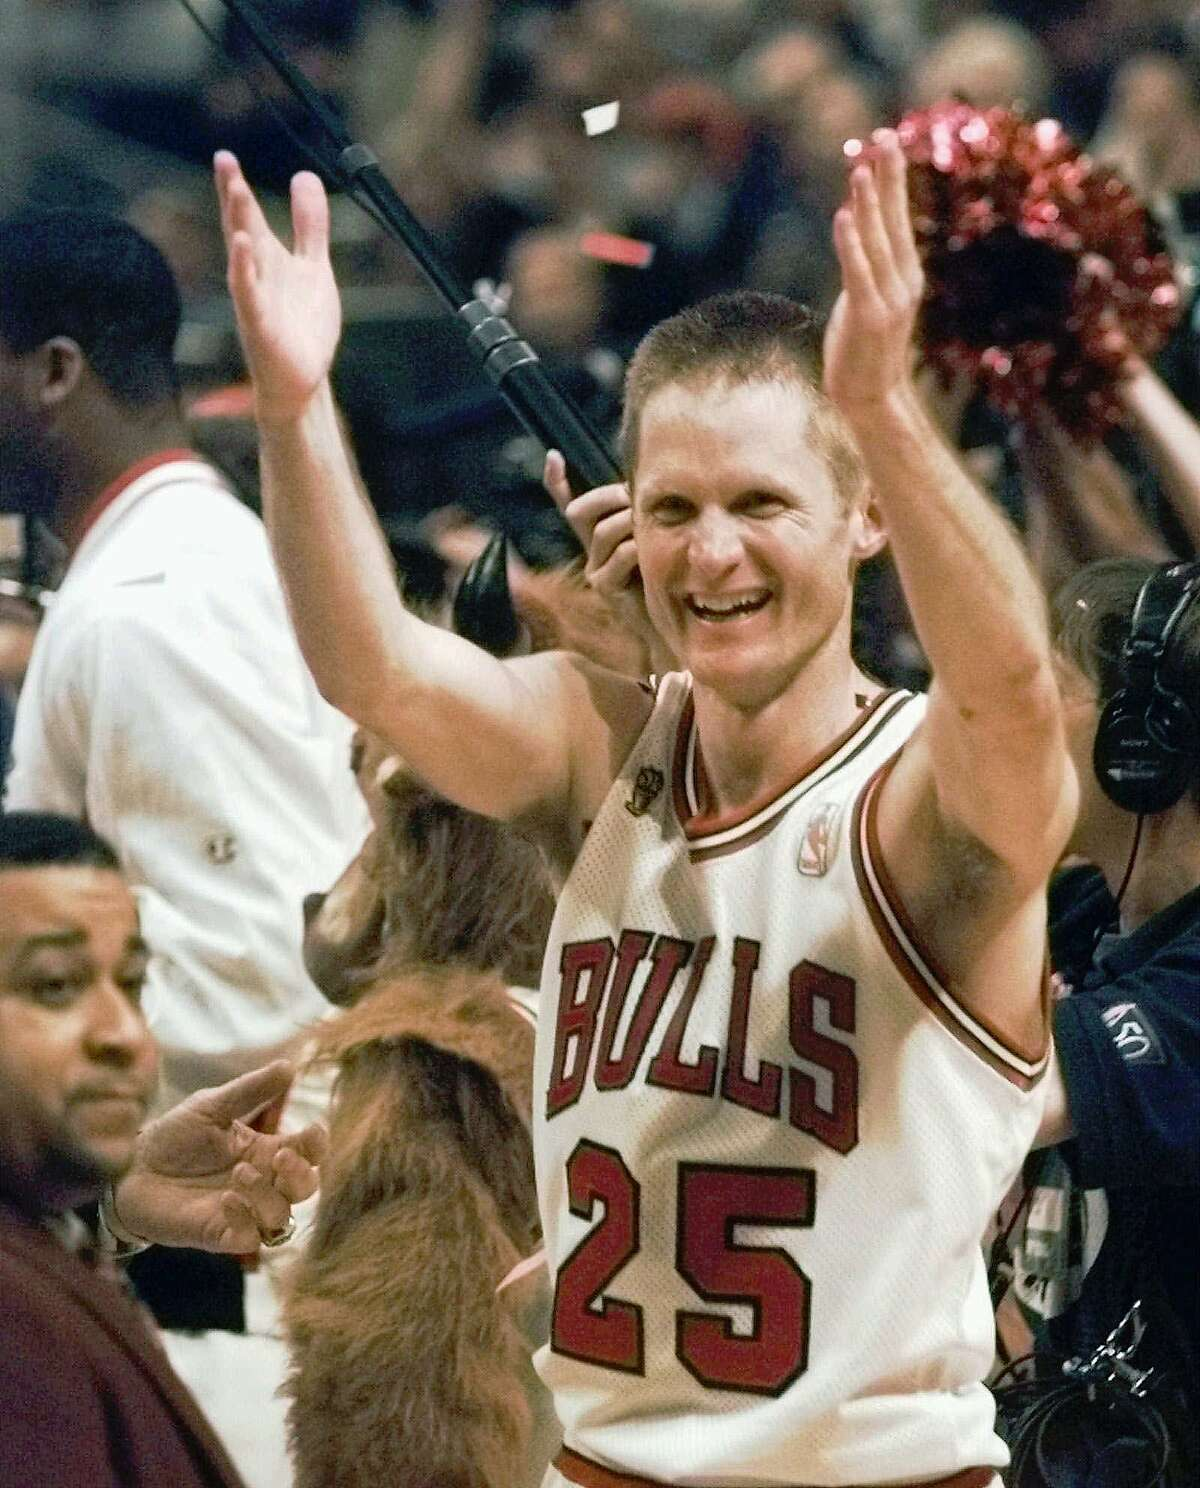 FILE--The Chicago Bulls' Steve Kerr celebrates after the Bulls beat the Utah Jazz 90-86 in Game 6 to win the NBA championship June 13, 1997, in Chicago. Kerr hit a shot with five seconds left that put the Bulls ahead for good in the game. Kerr will miss 6-8 weeks after fracturing his left collarbone when Philadelphia's Derrick Coleman landed on top of him. (AP Photo/Beth A. Keiser) HOUCHRON CAPTION (05/24/1998): Kerr